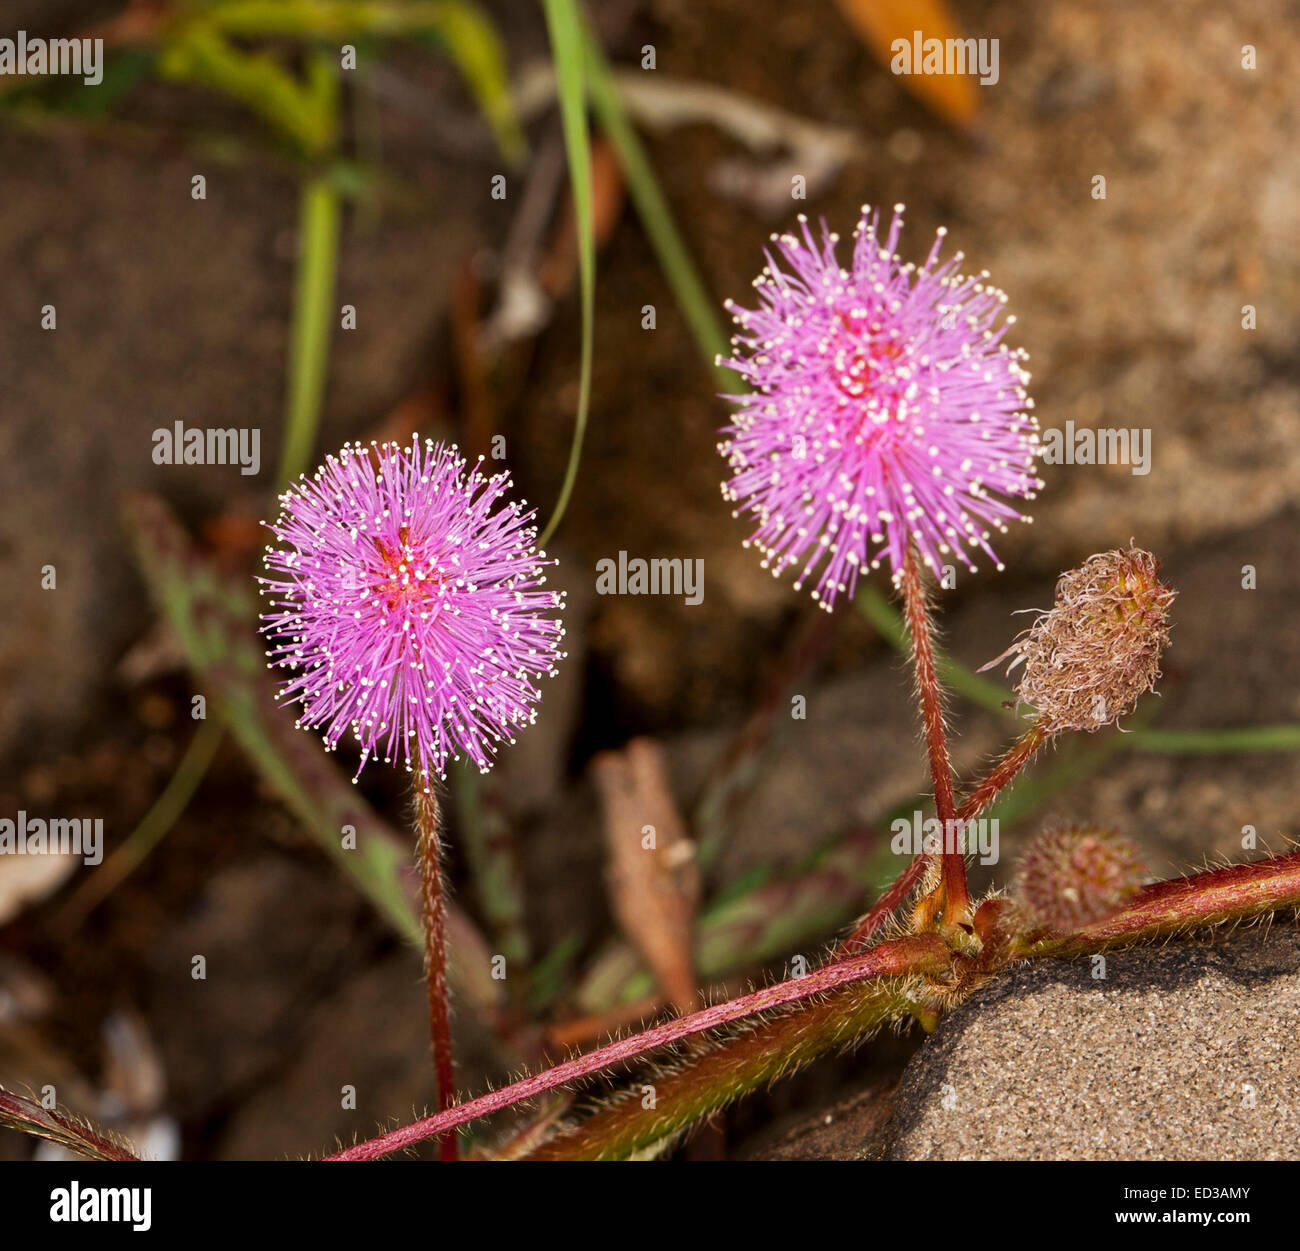 Tropical weeds stock photos tropical weeds stock images alamy bright pink flowers of mimosa pigra an invasive weed species causing environmental damage in northern mightylinksfo